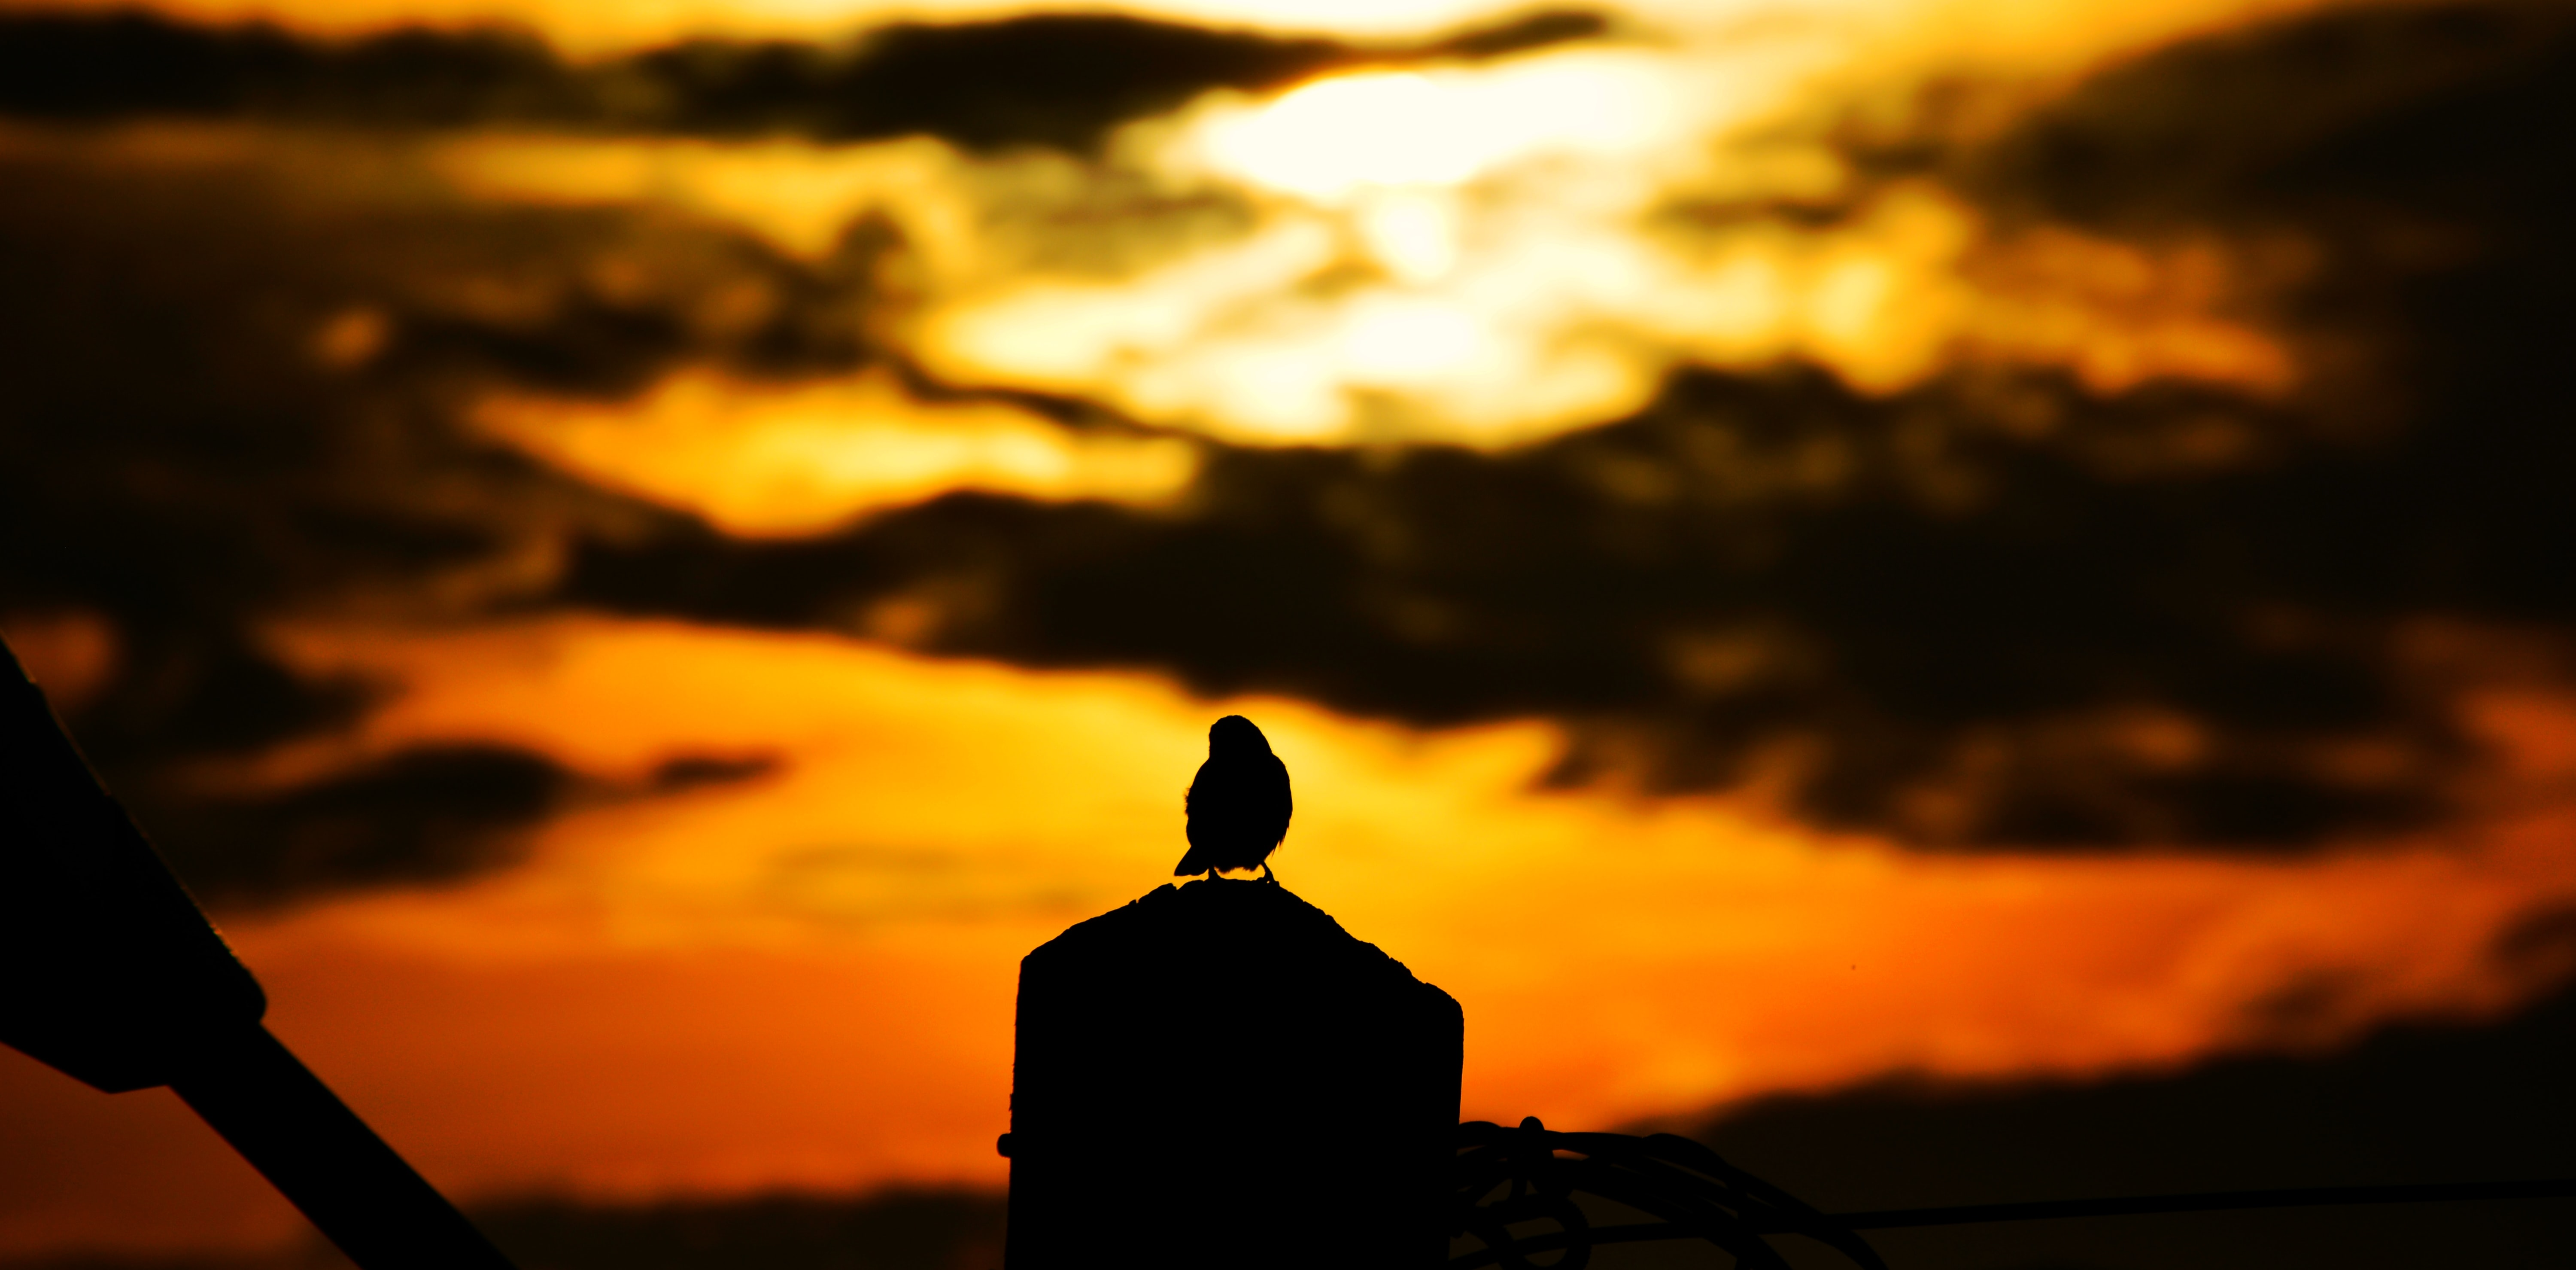 A silhouette of a bird perched on a rock or post with the sunset creating an orange sky in Bessengue